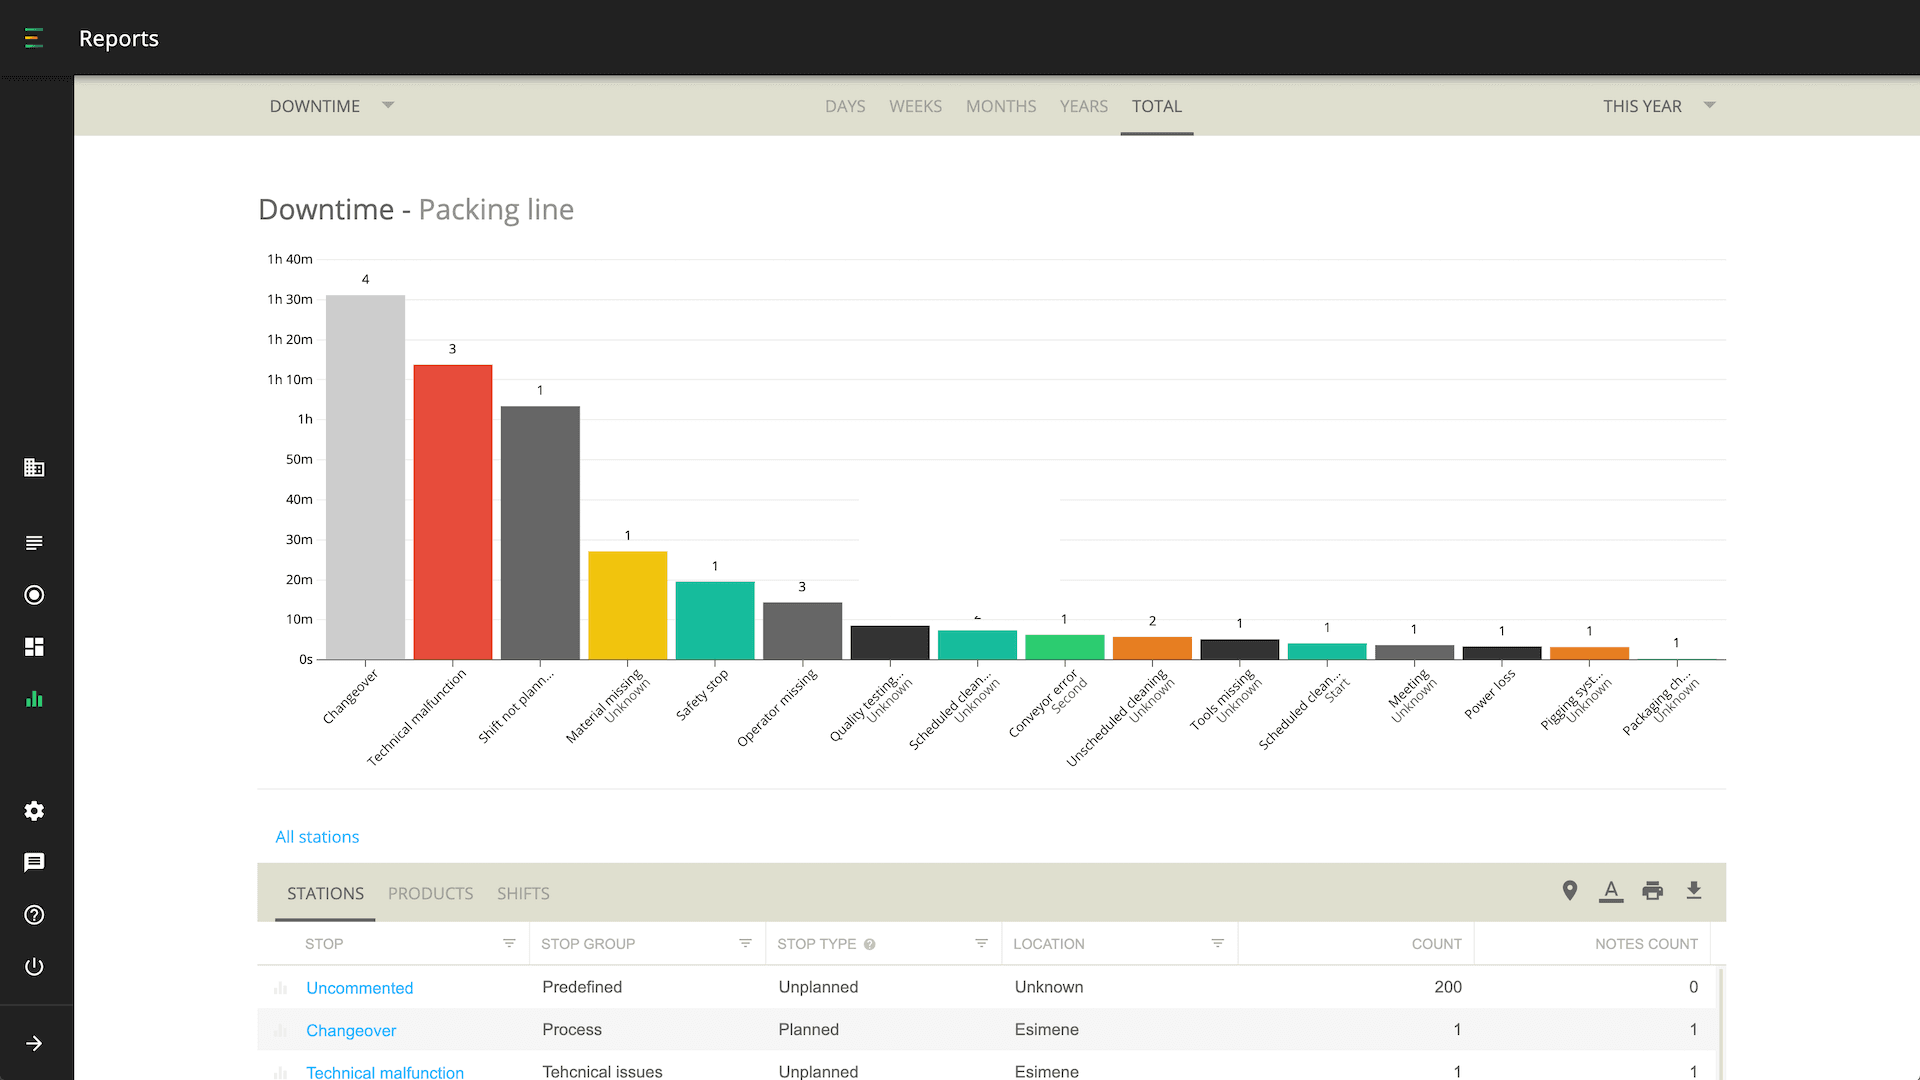 Evocon downtime tracking